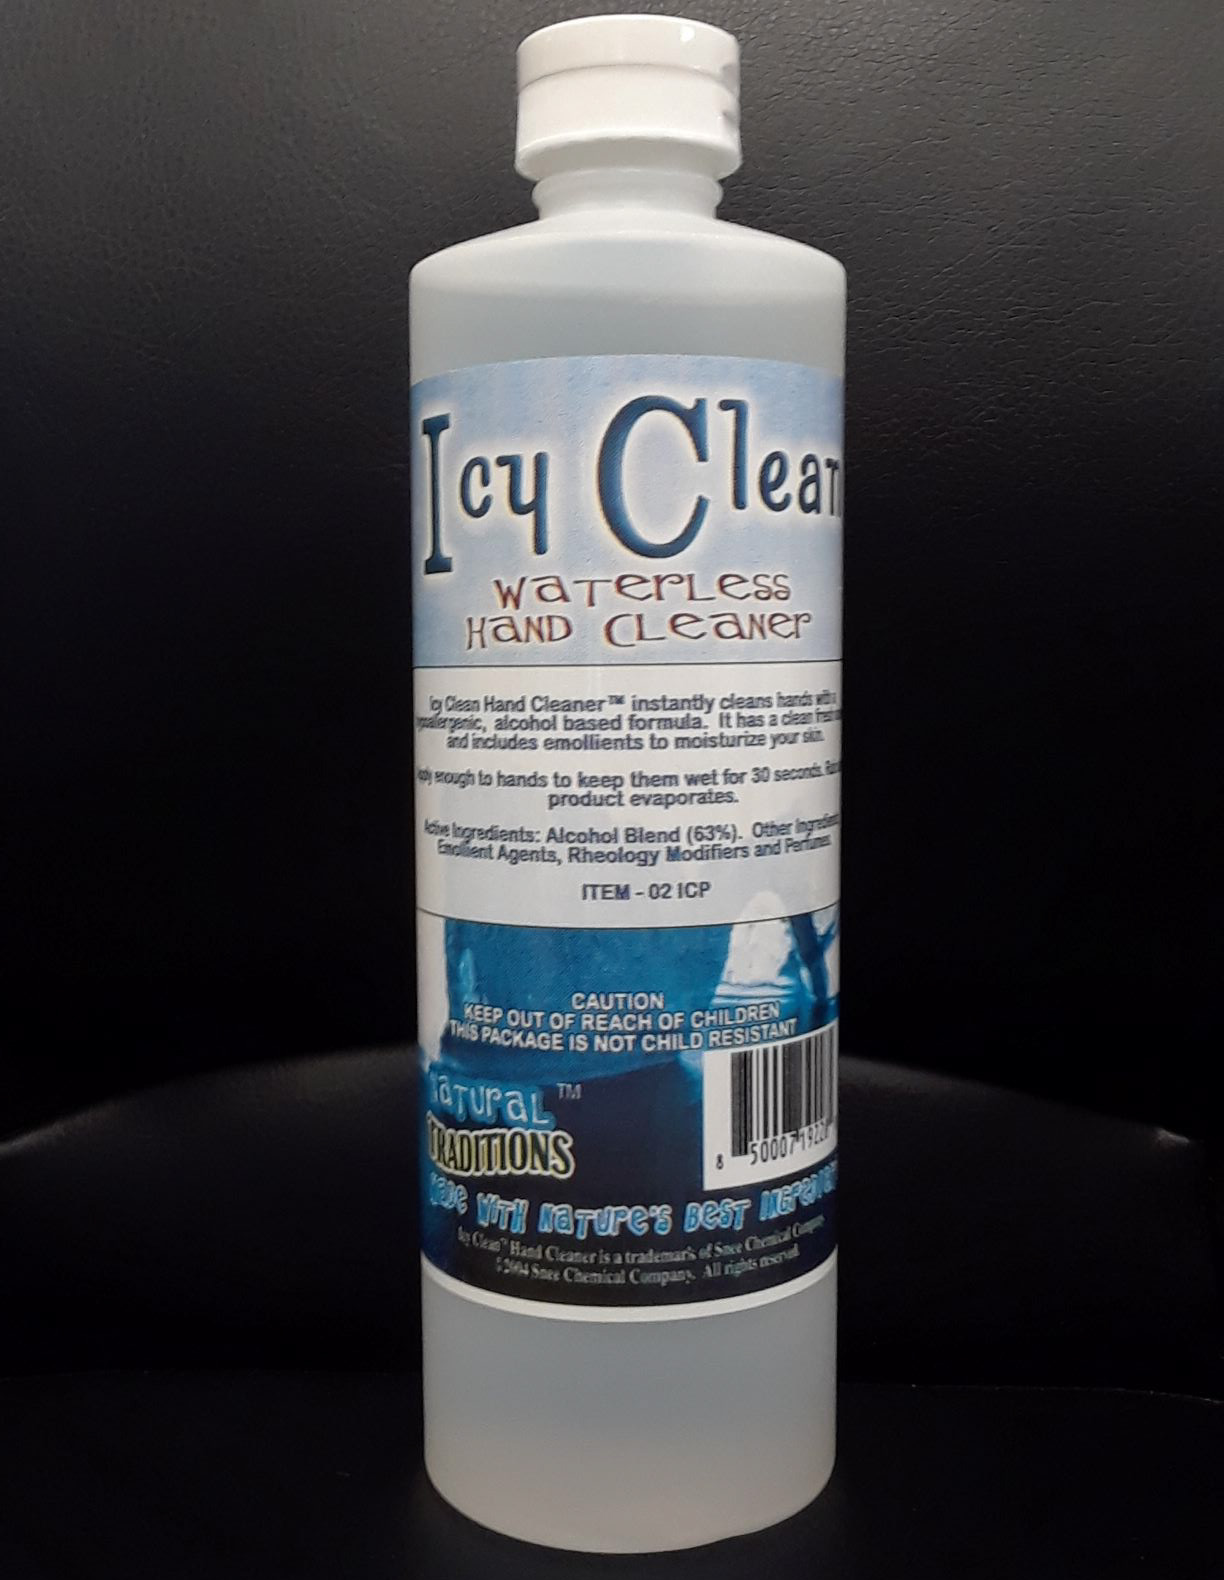 Icy Clean 63% Alcohol Waterless Hand Cleaner, Case of 16, 16 oz Bottles